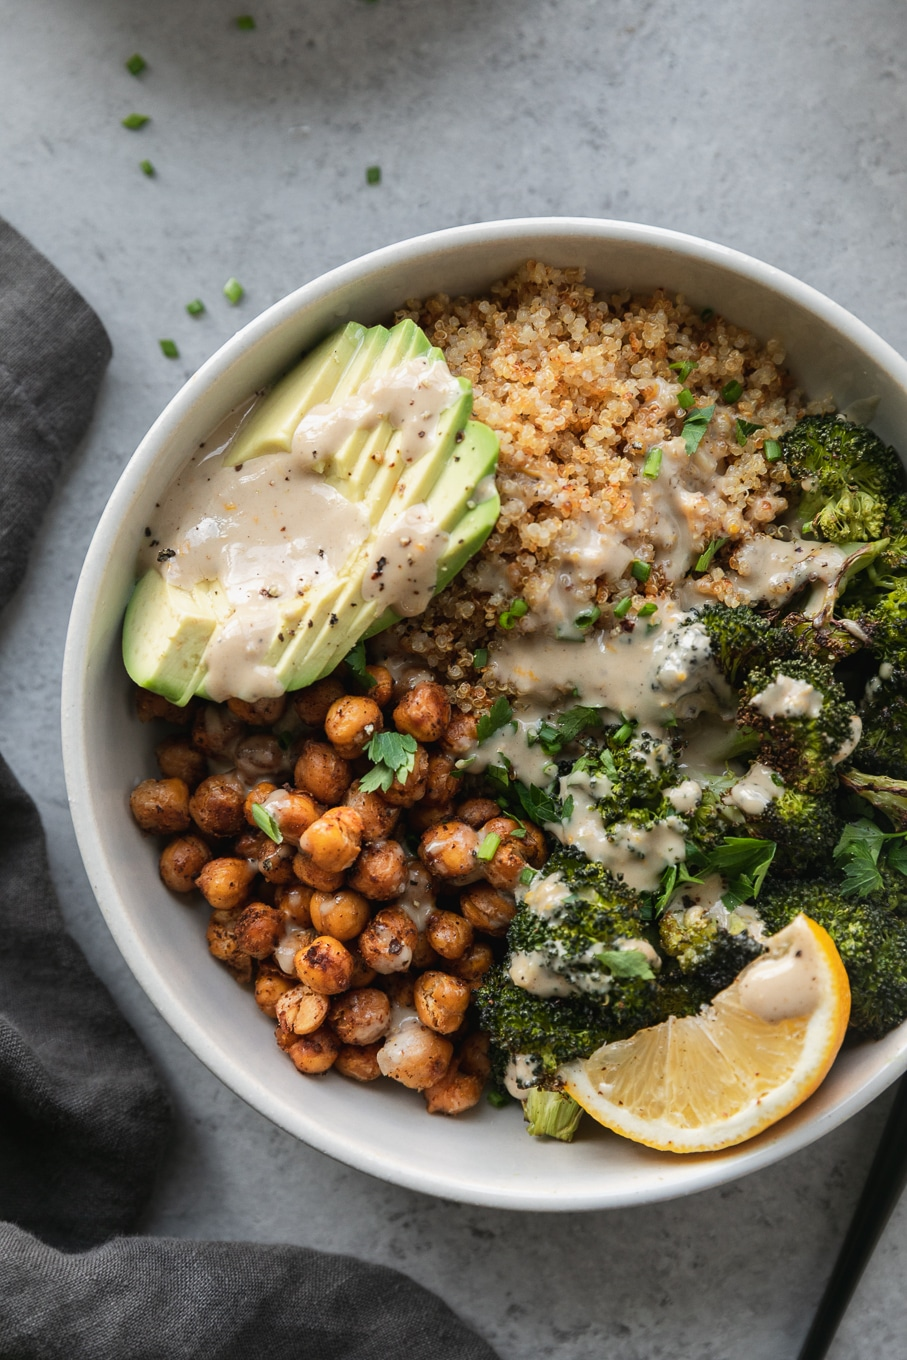 Overhead close up shot of a bowl with chickpeas, sliced avocado, quinoa, roasted broccoli, tahini sauce, and a lemon wedge with a dark grey linen next to it